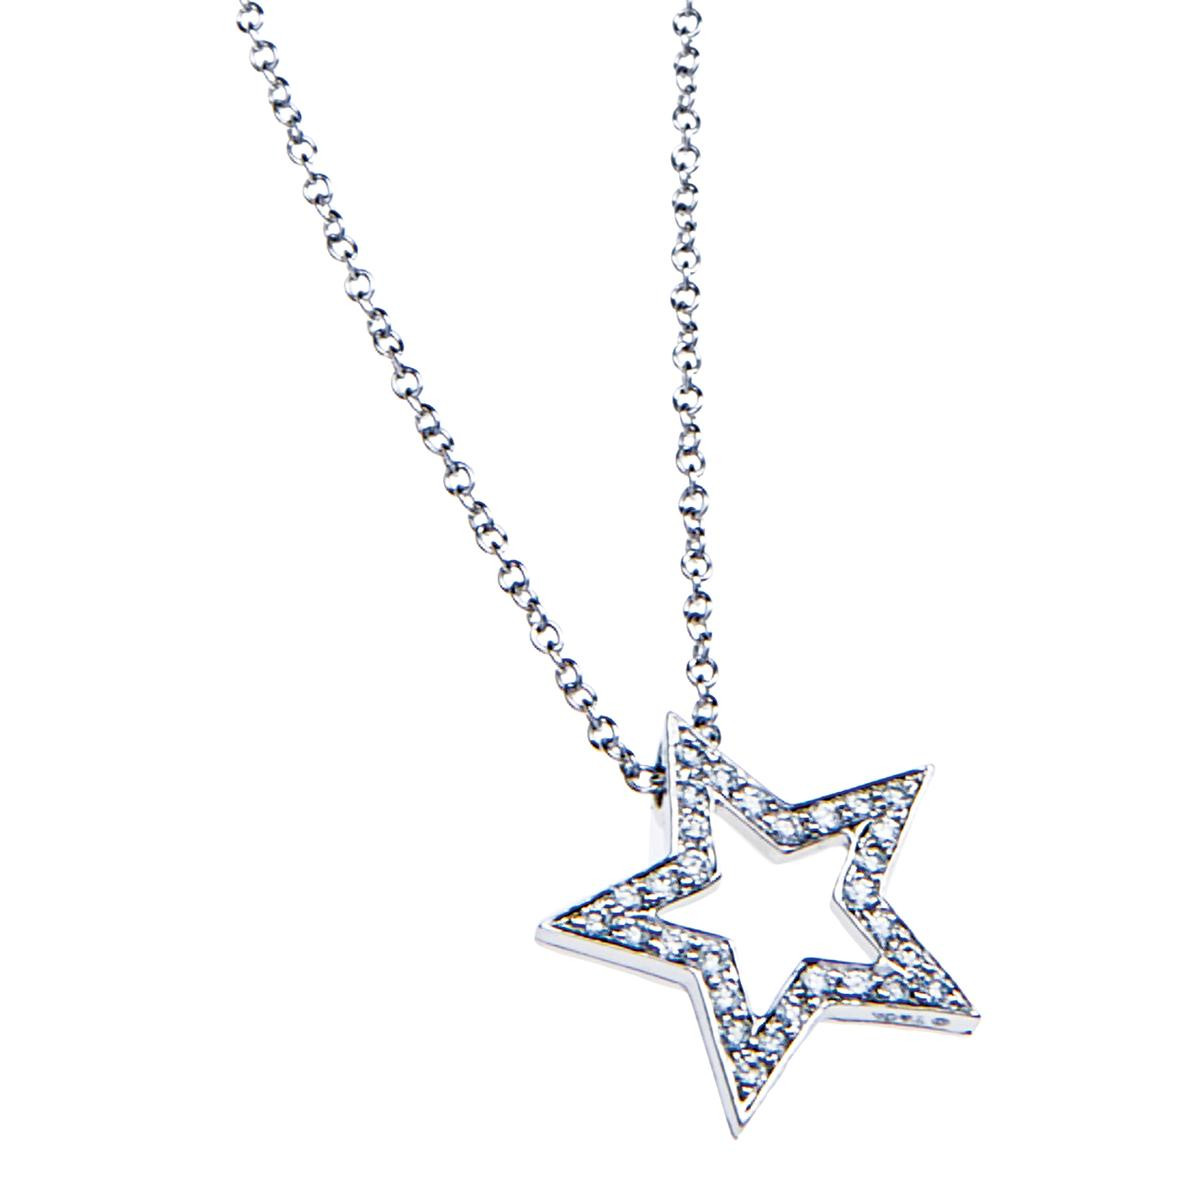 Vintage Tiffany & Co. Diamond Star Pendant